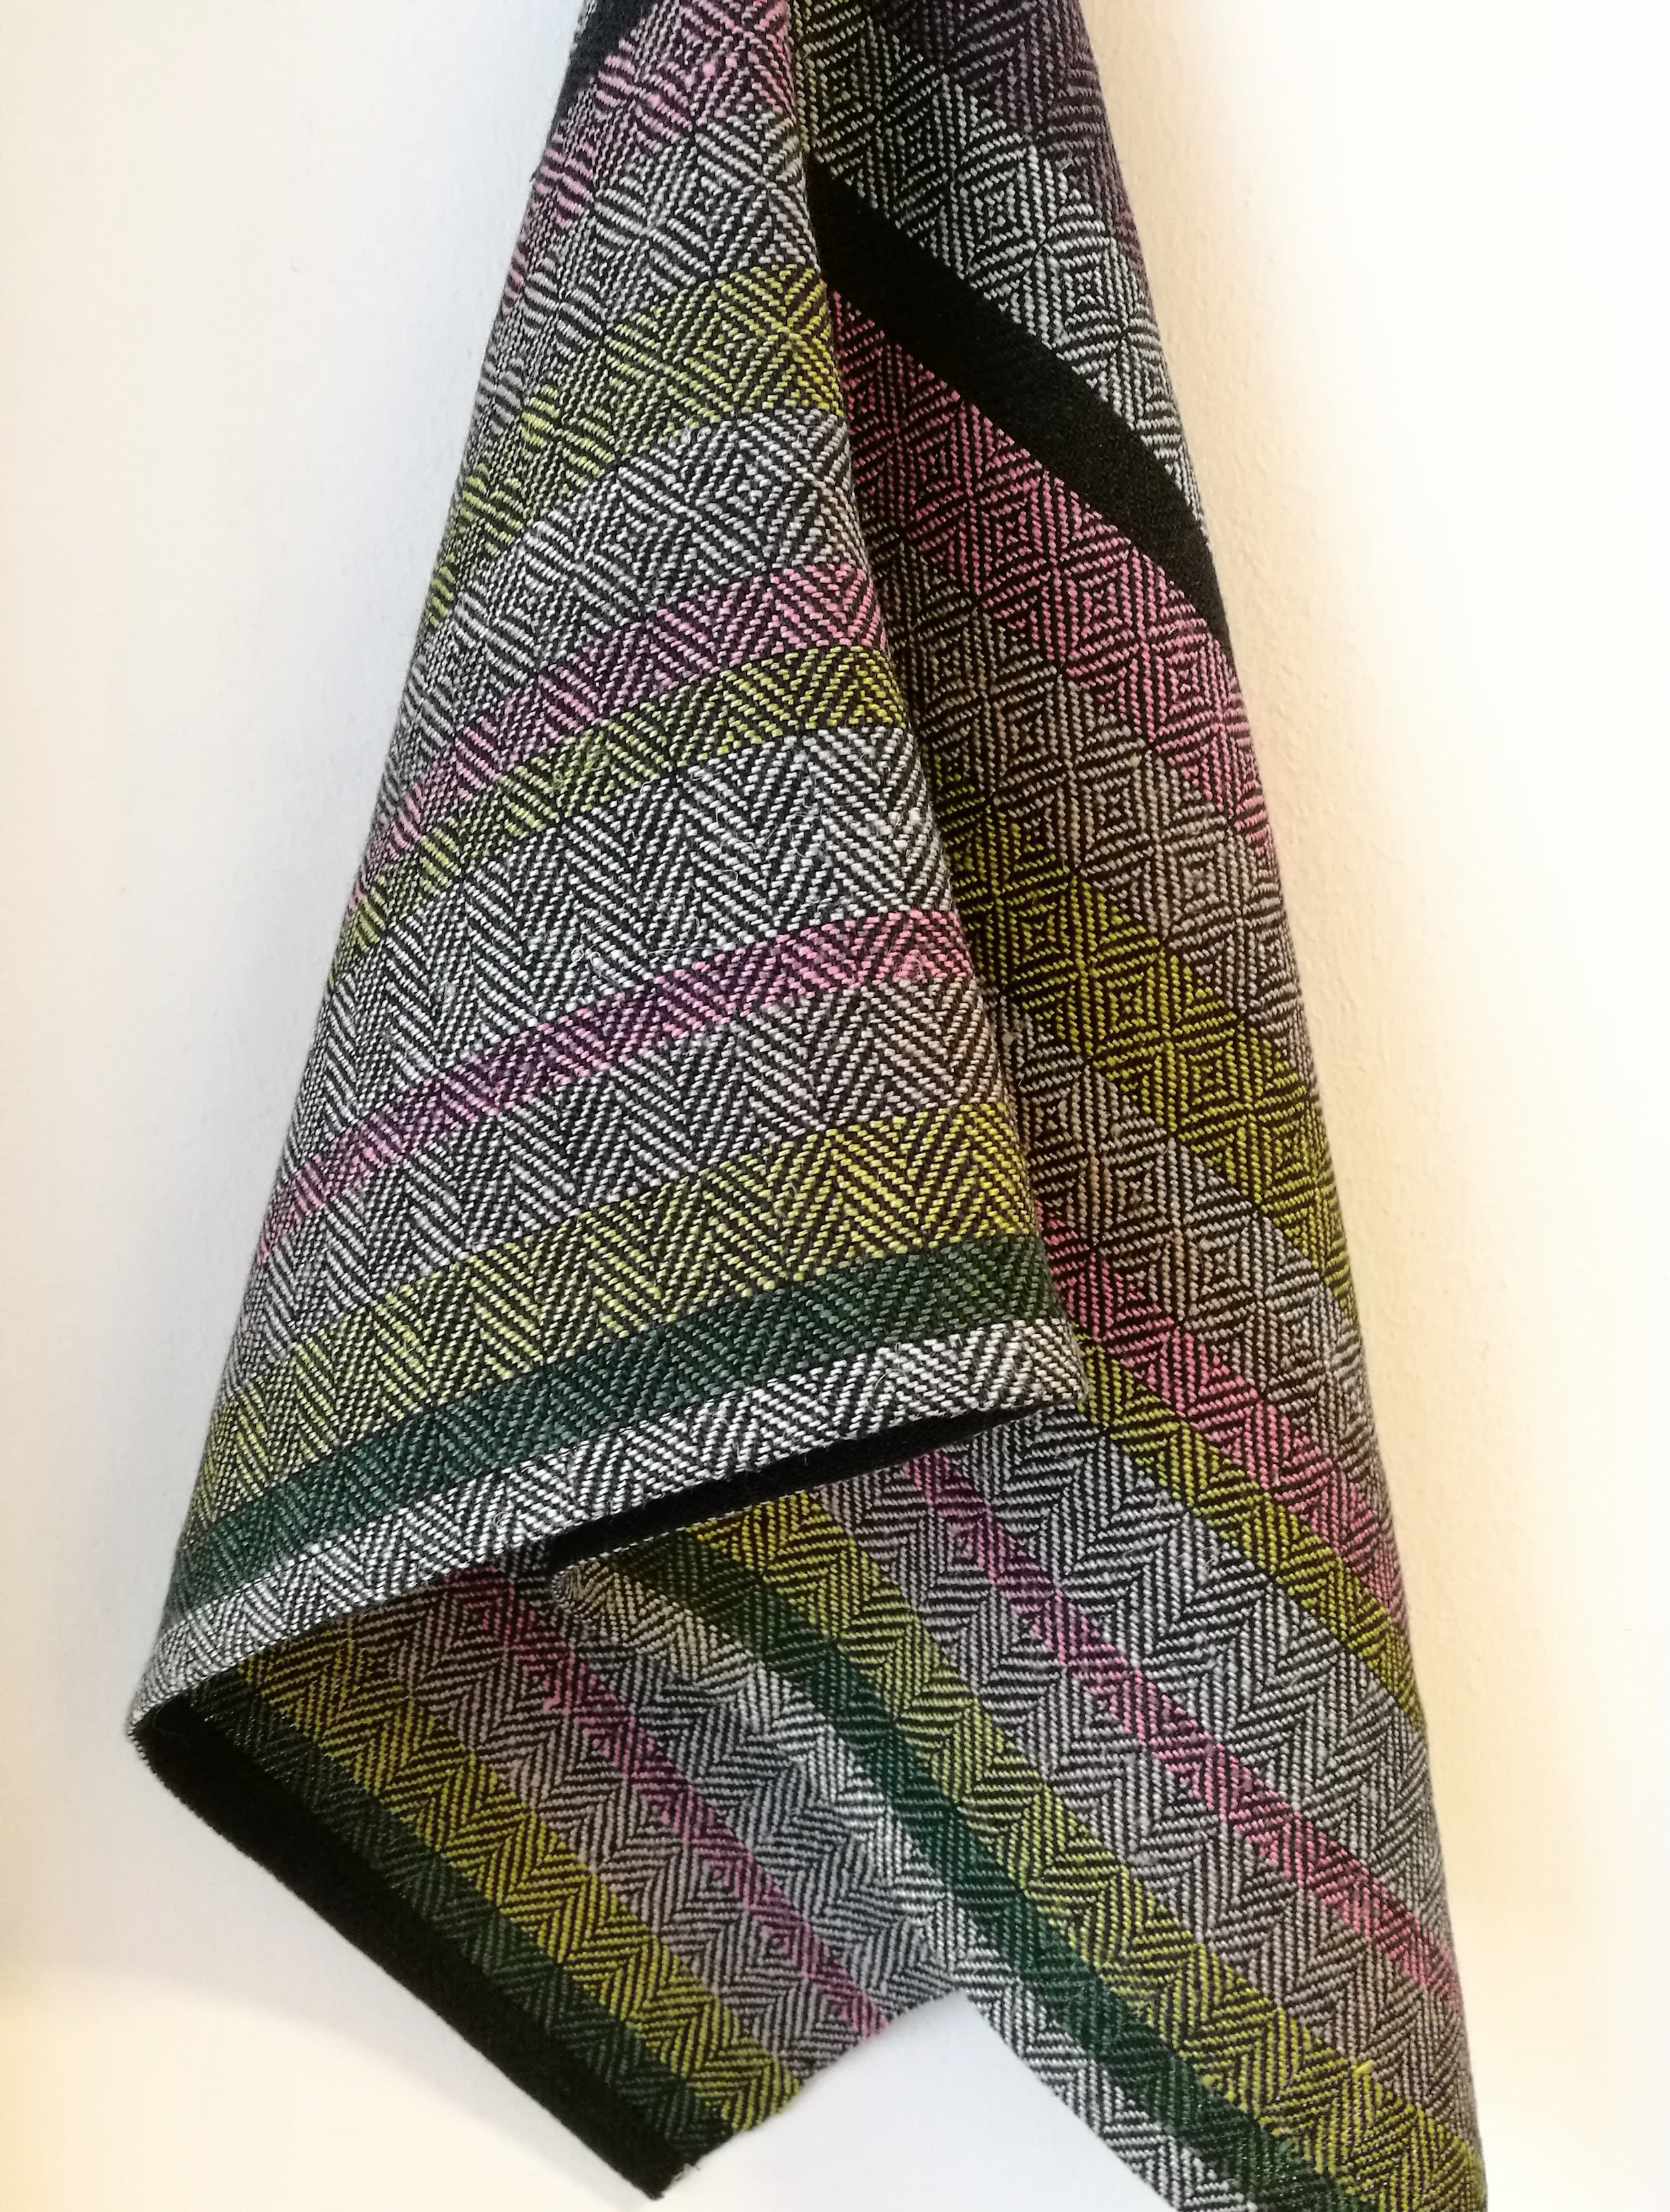 Small towel woven on the linen warp